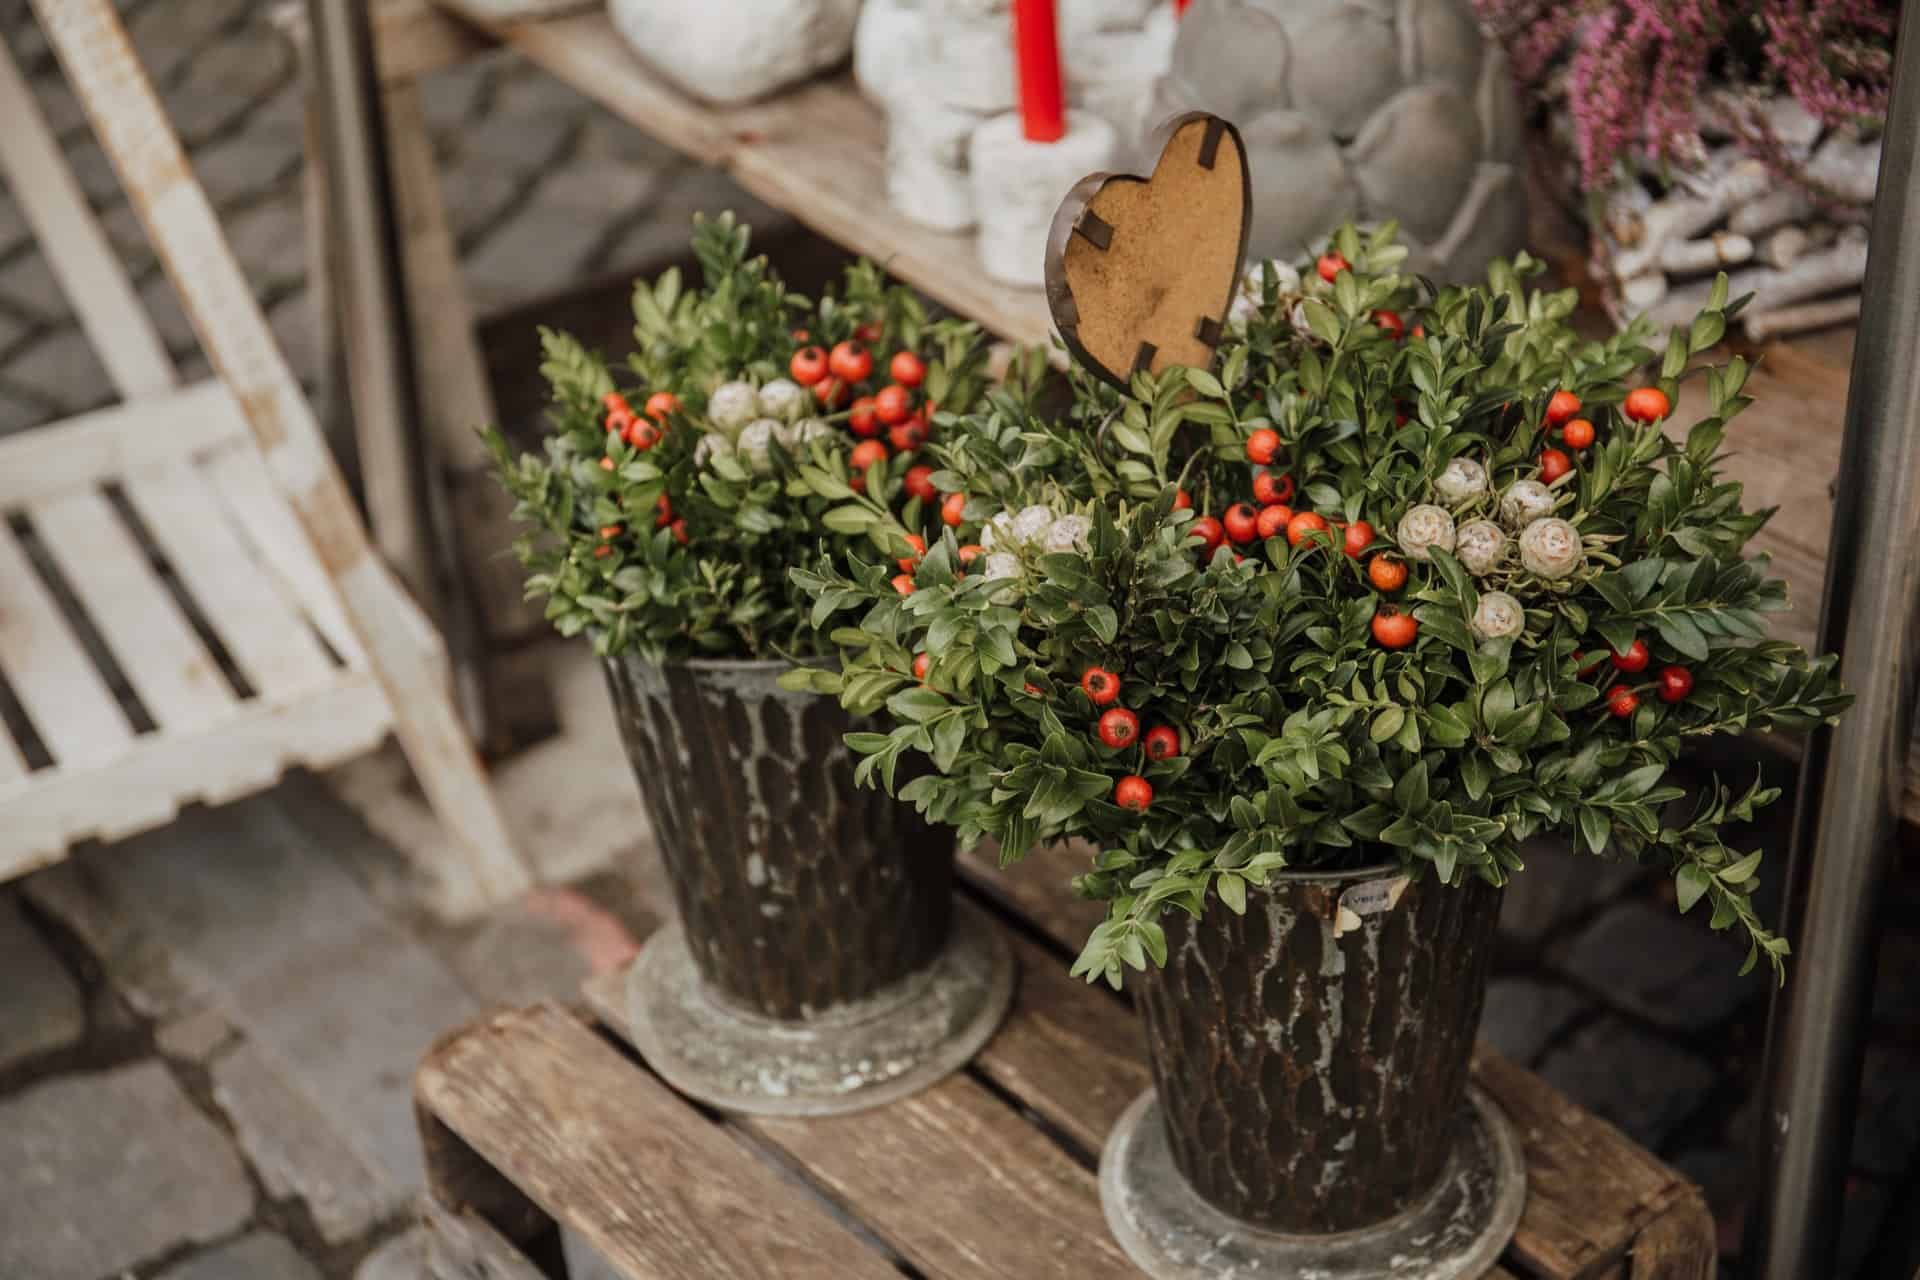 23 of the best winter container garden ideas for your backyard #christmas #containers #planters #gardenplanters #christmasBall